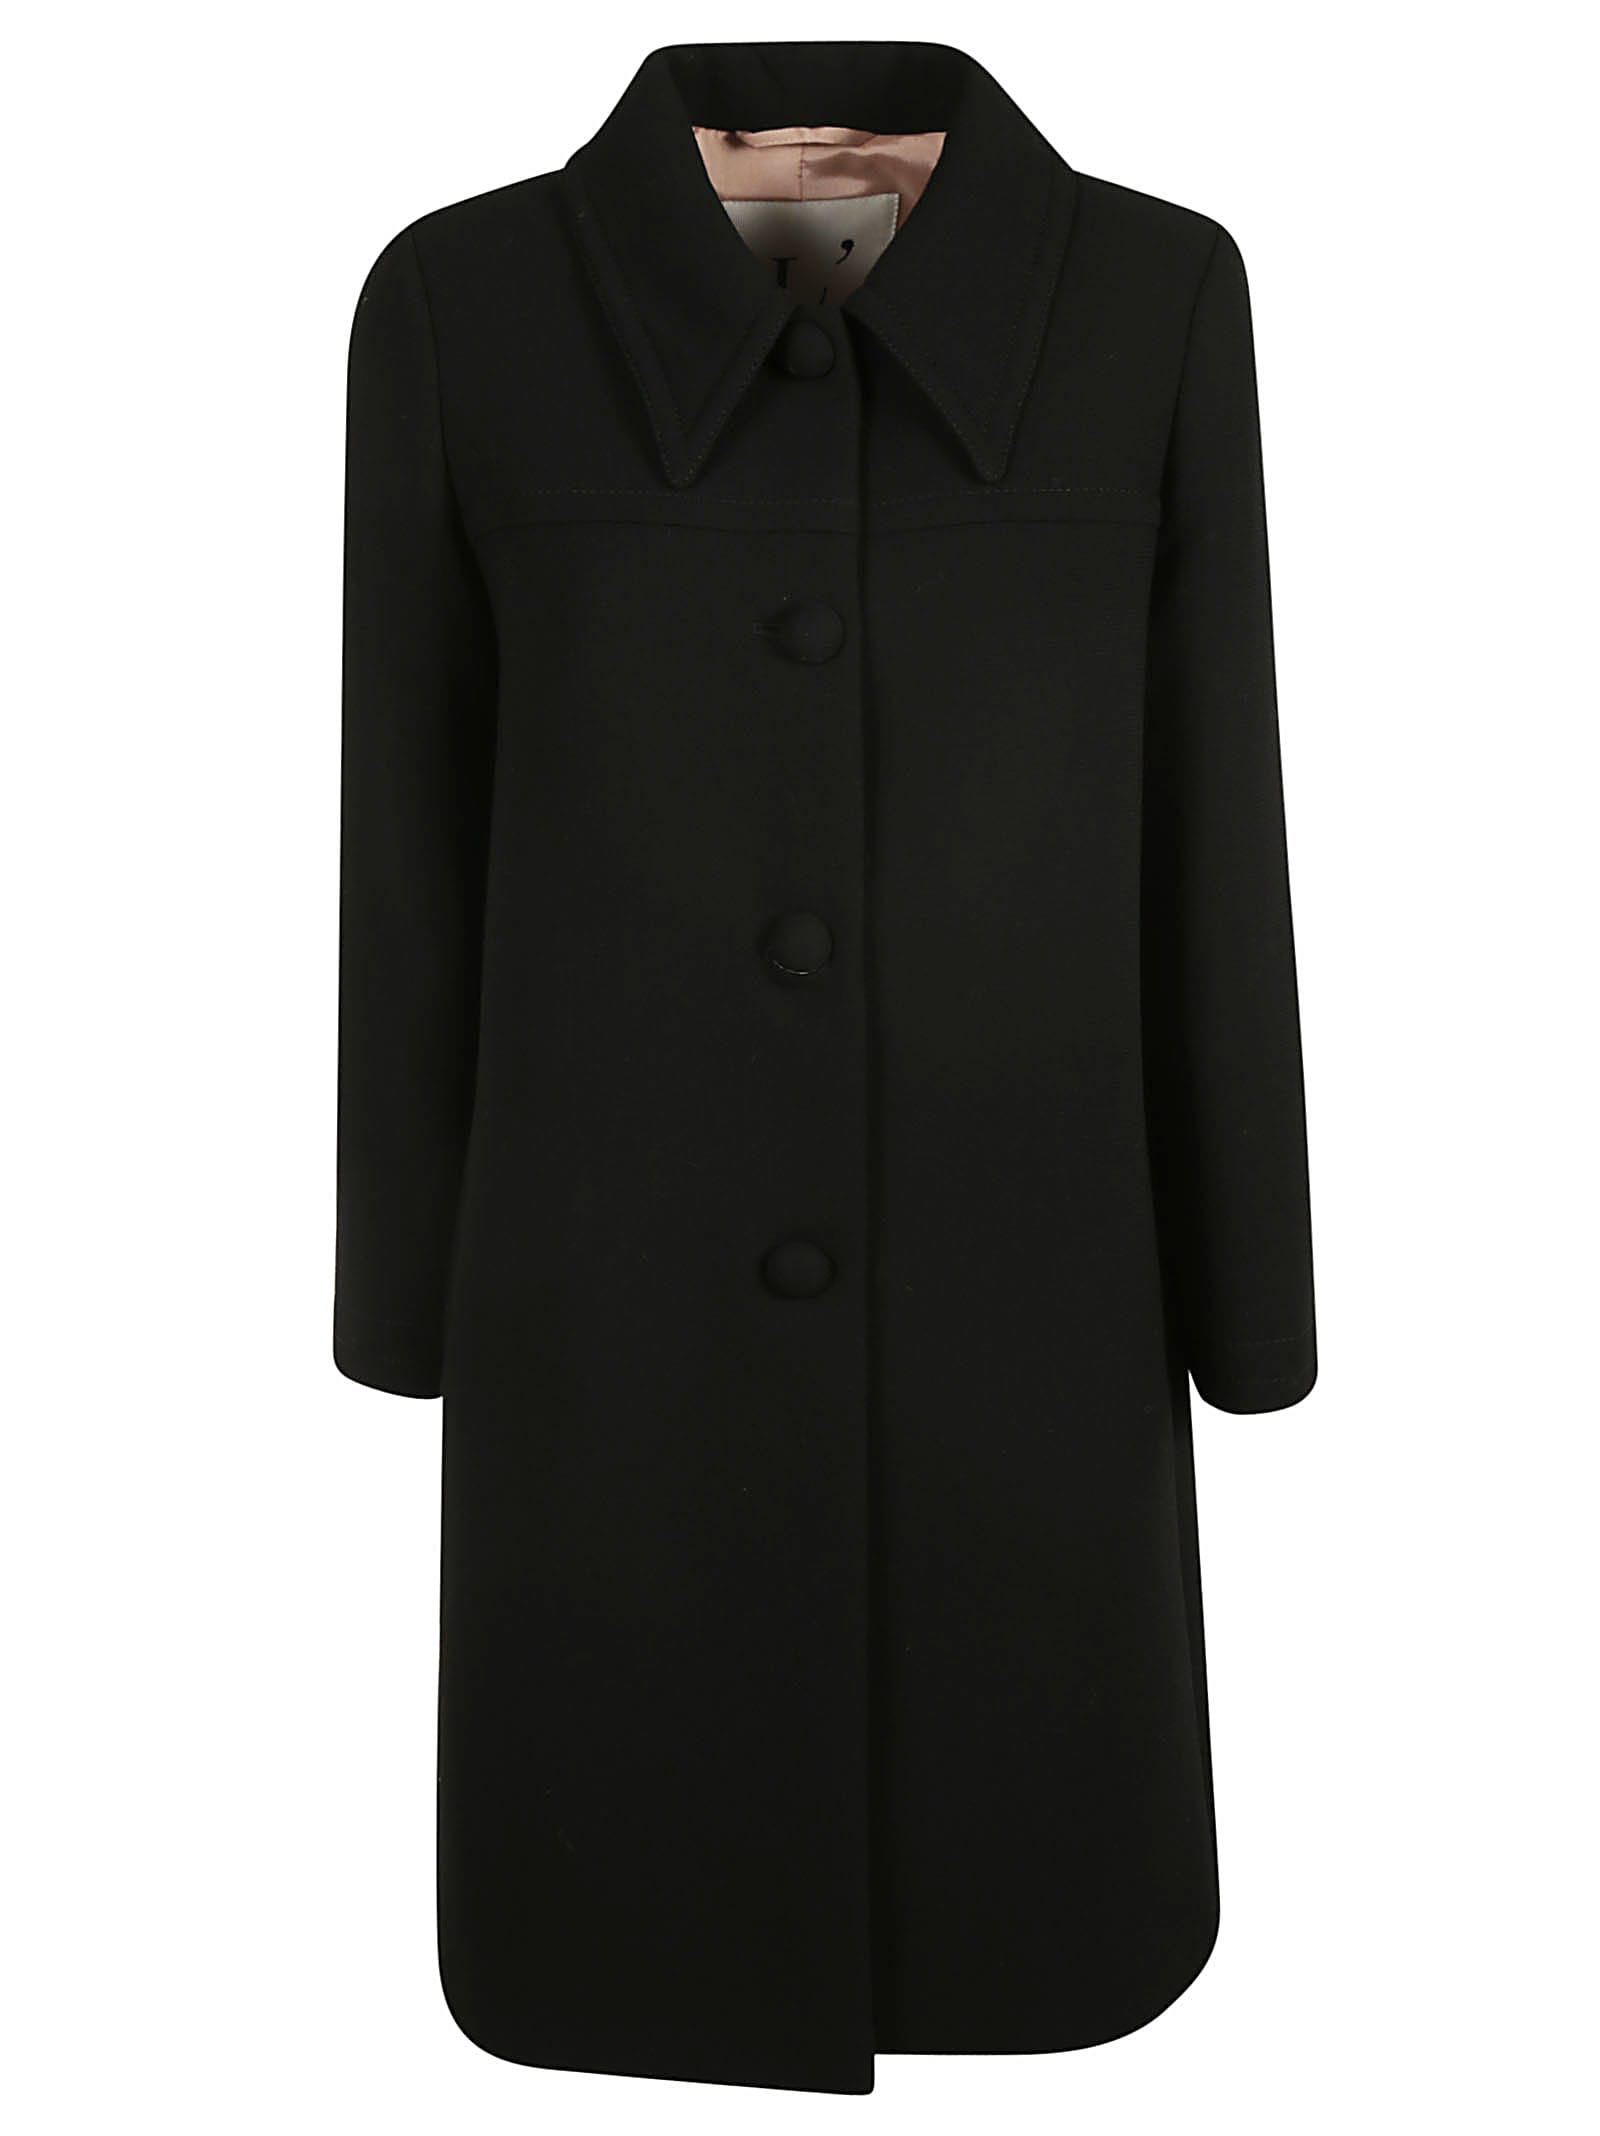 LAutre Chose Single Breasted Classic Long Coat